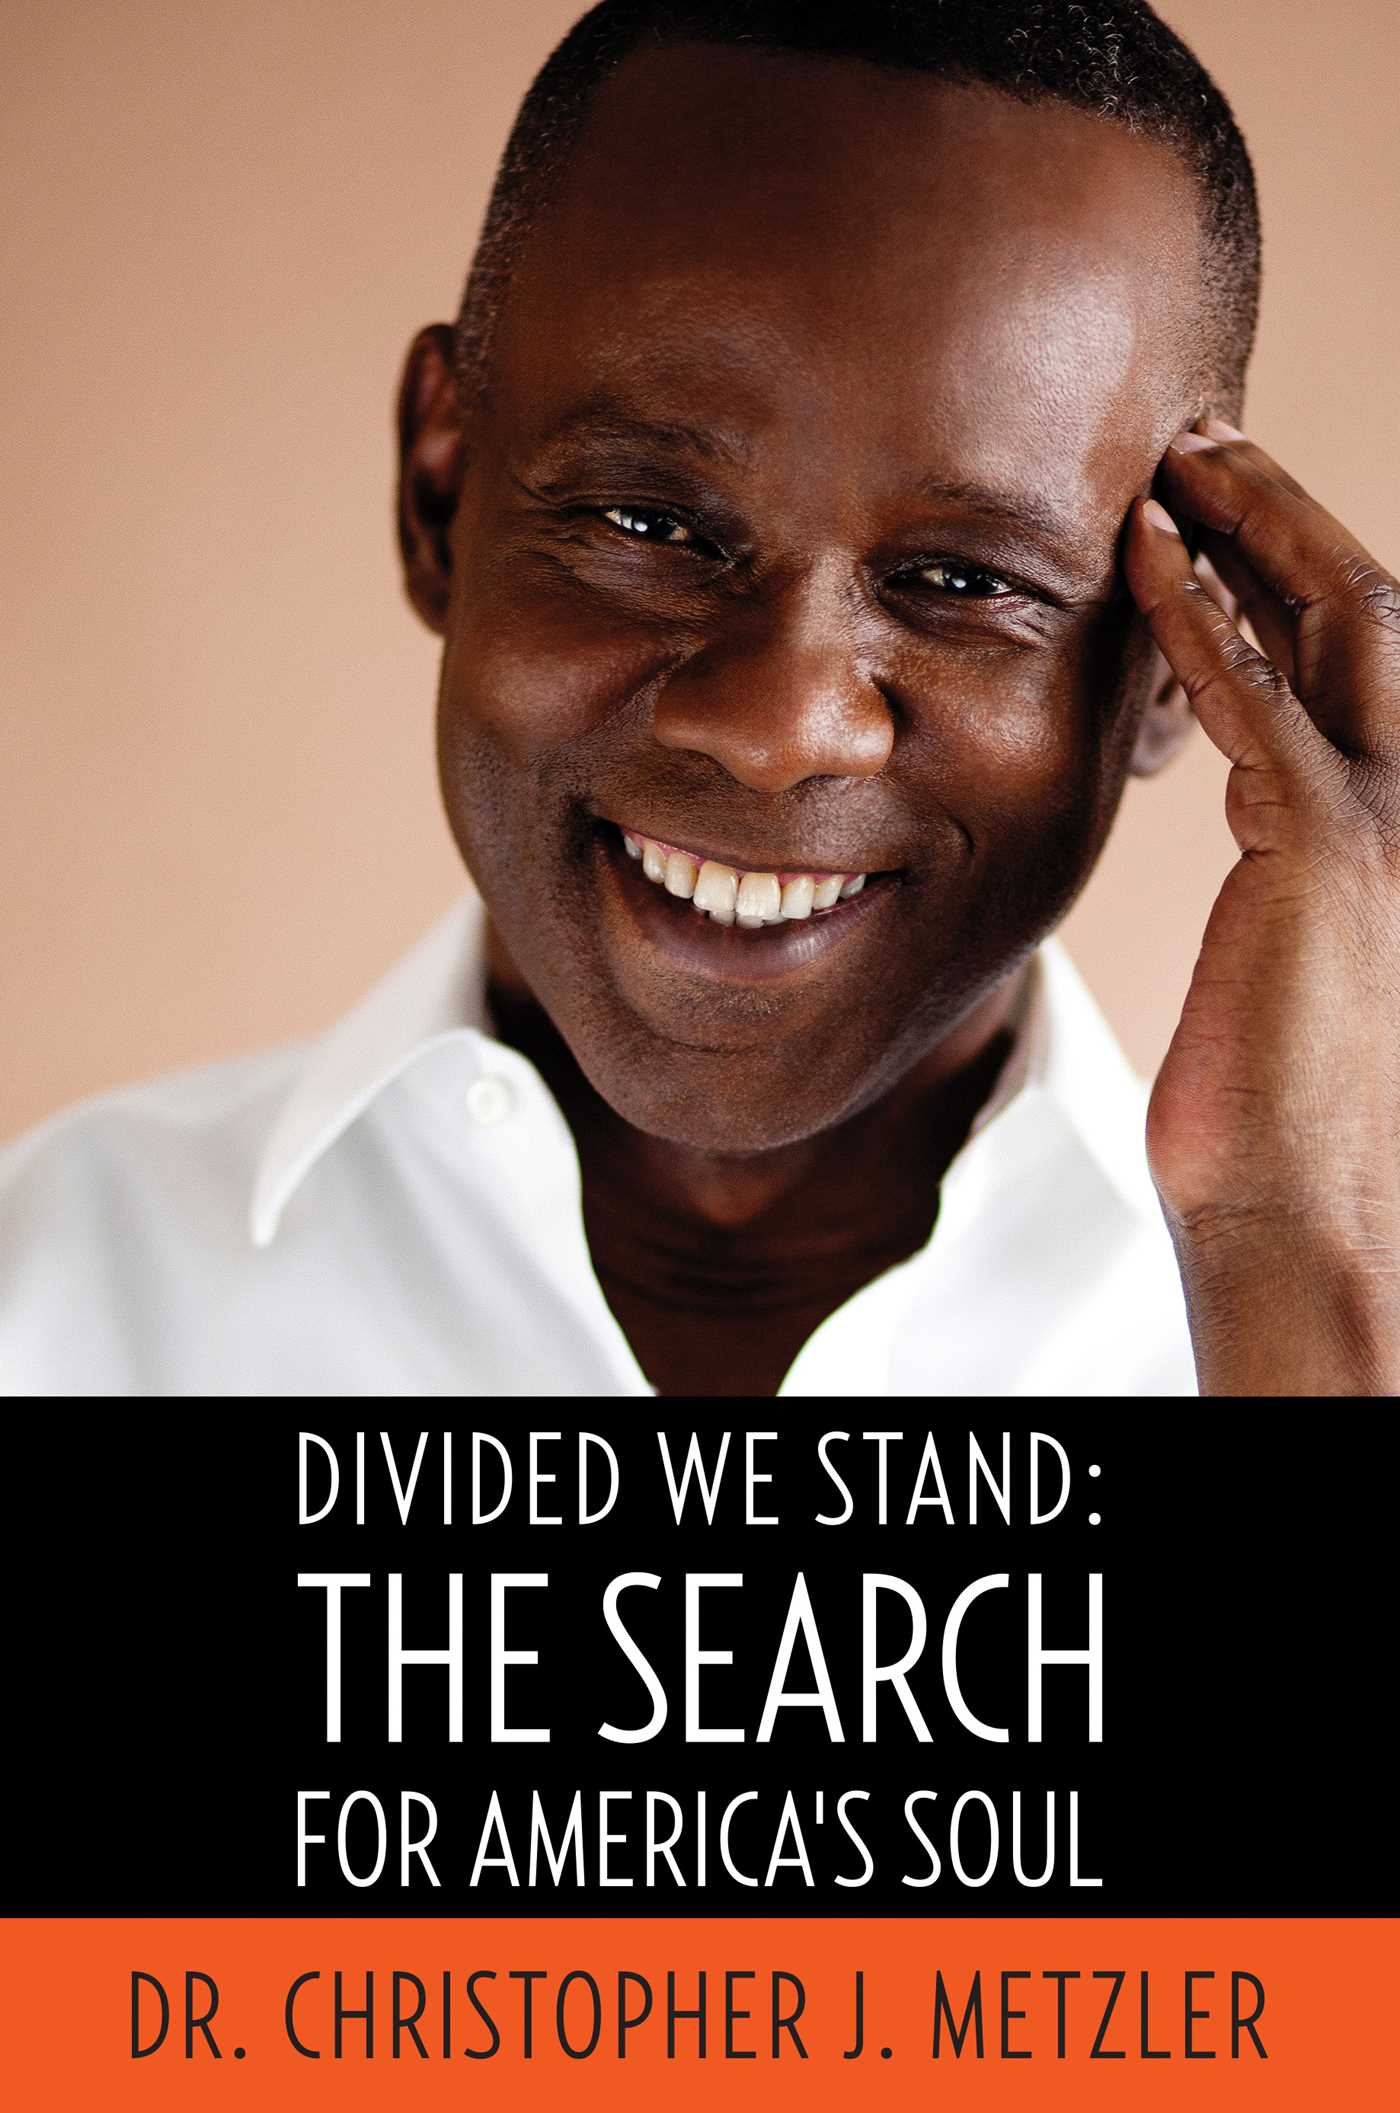 Divided we stand 9781682618219 hr